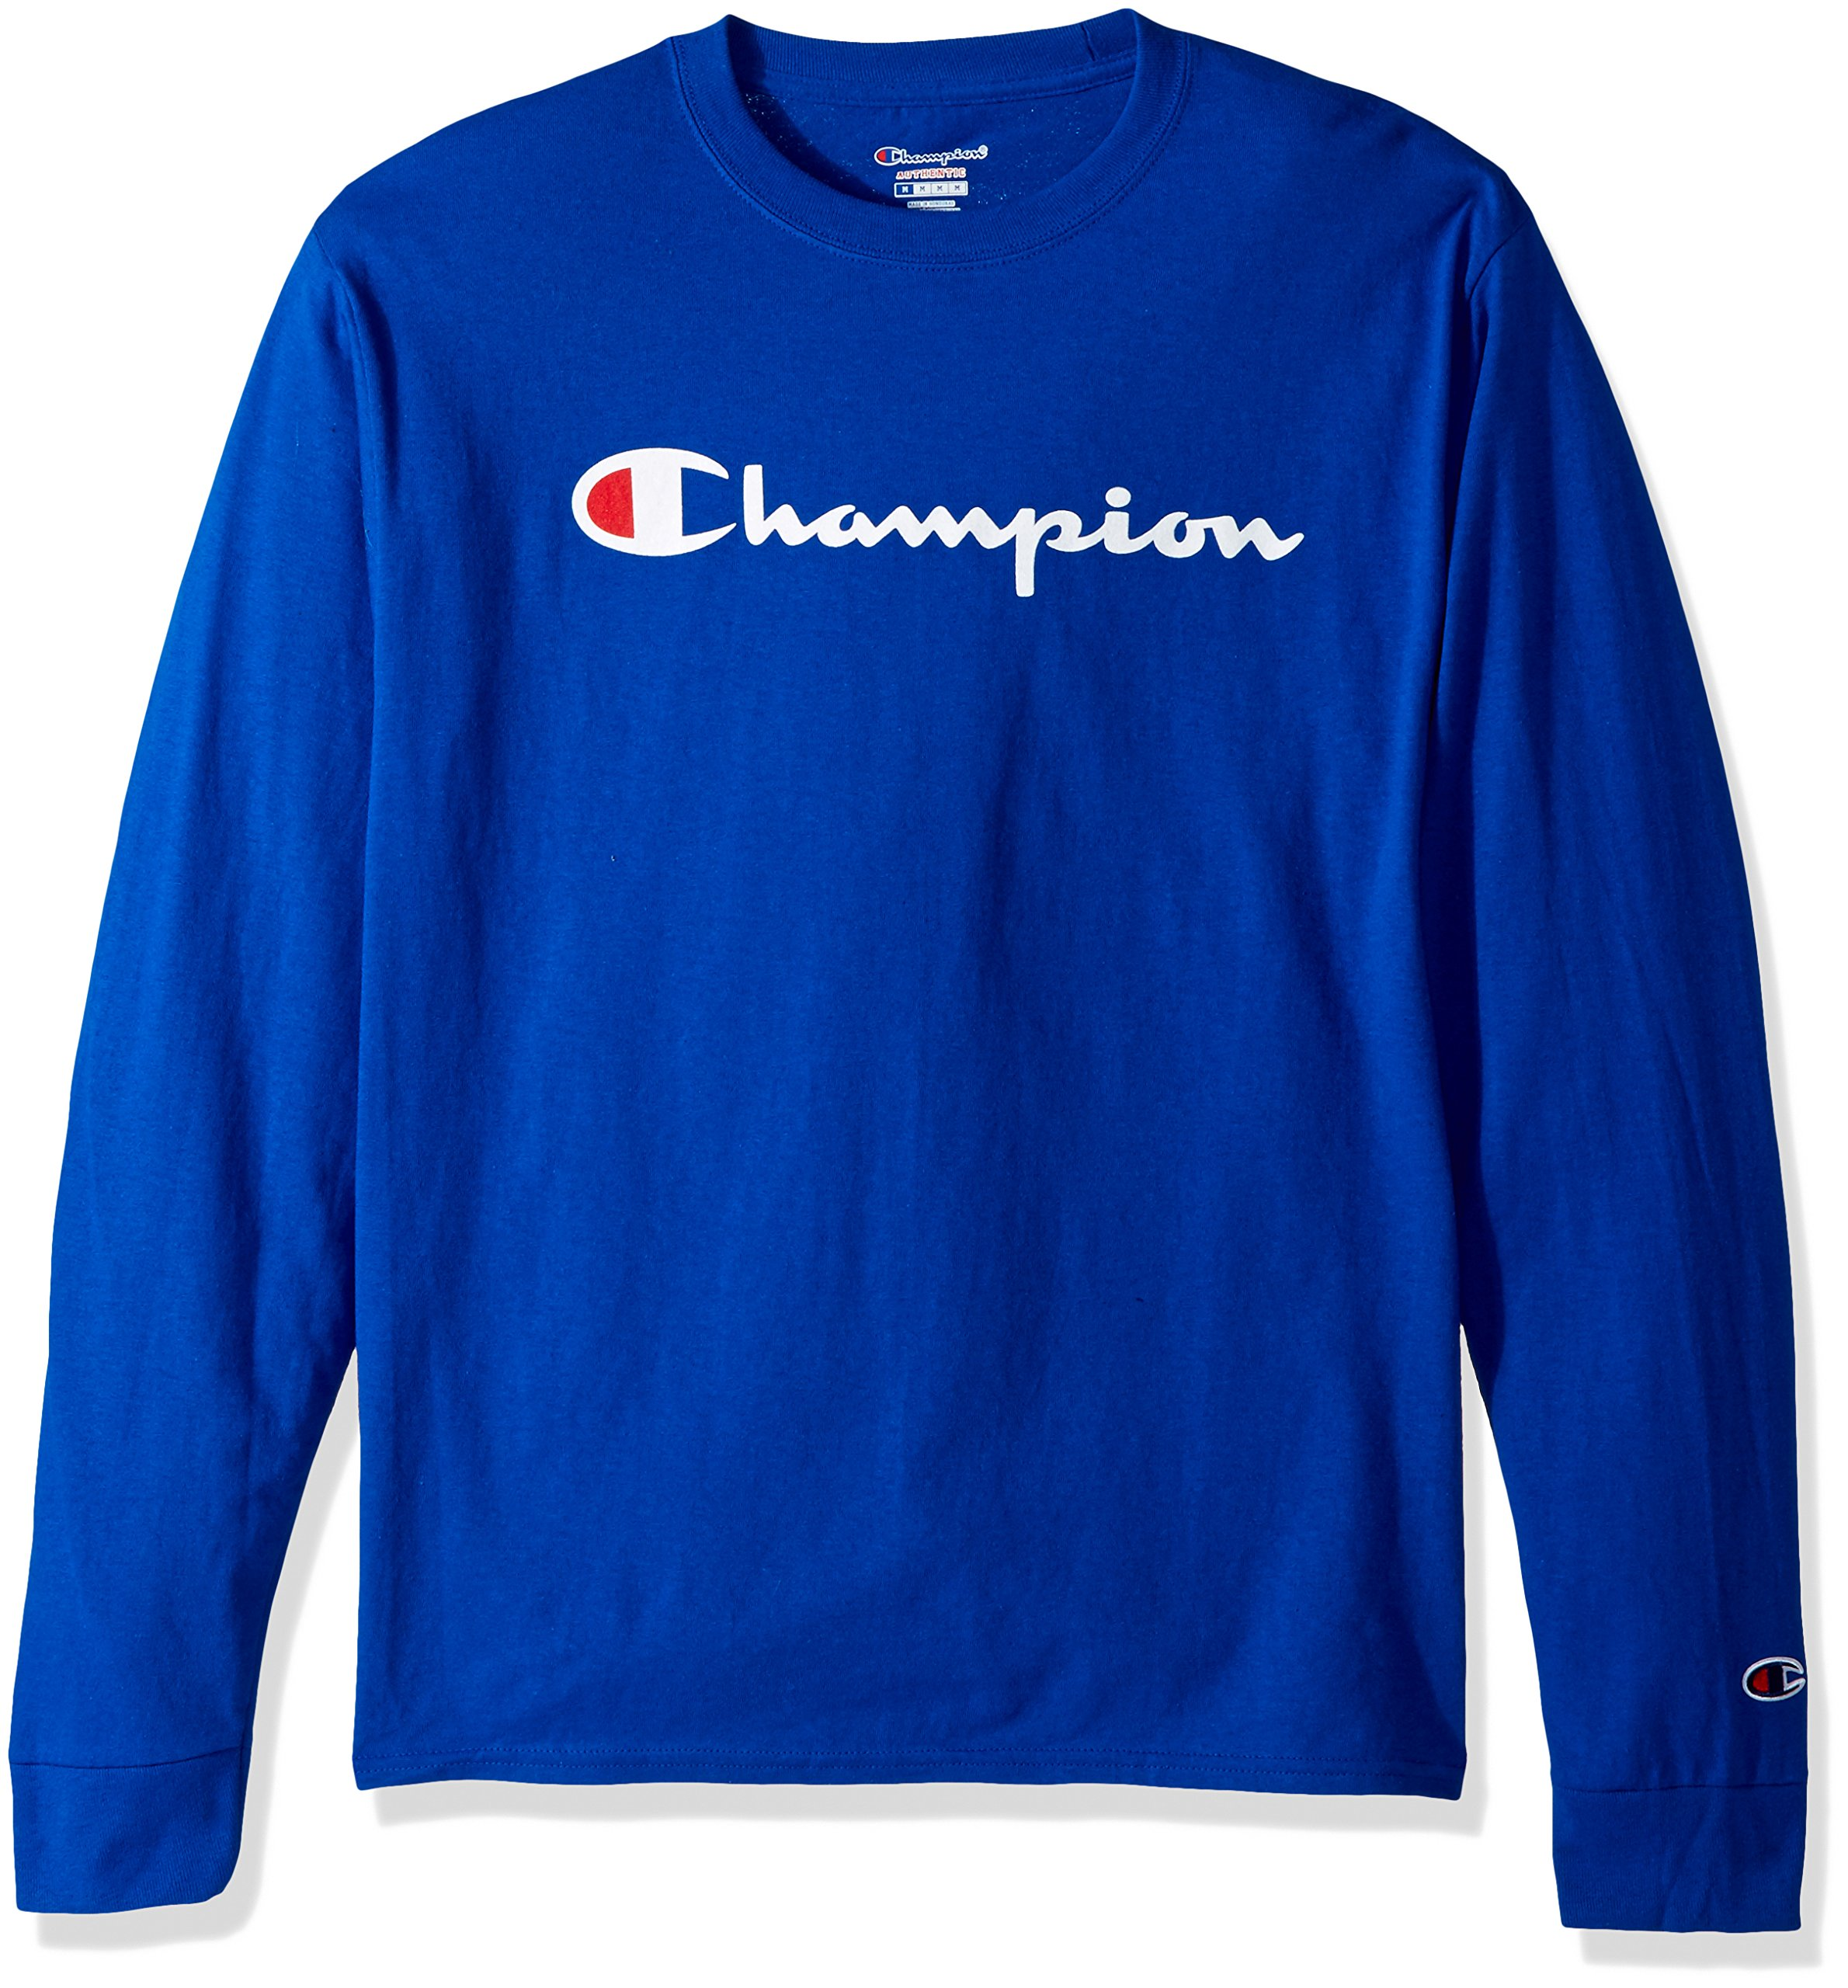 Champion LIFE Men's Cotton Long Sleeve Tee, Surf The Web/Patriotic Script, Large by Champion LIFE